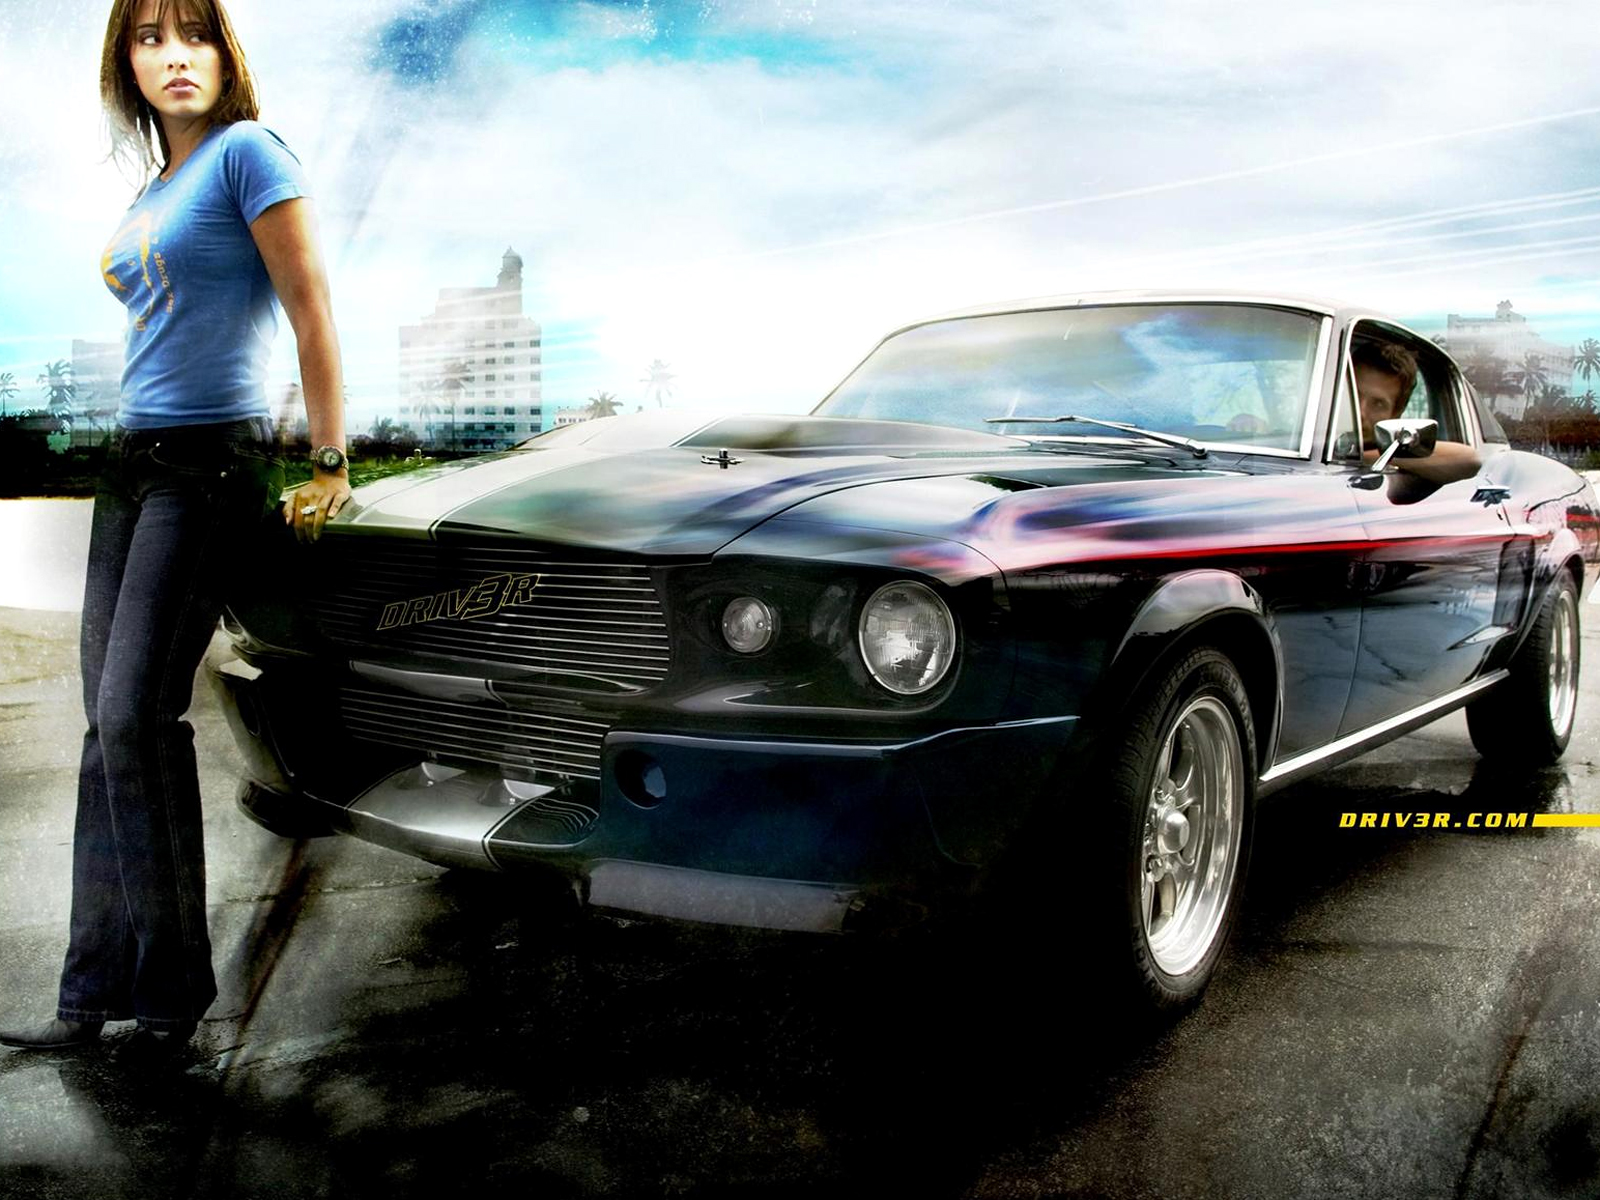 Beautful PC Wallpapers USA Cars Ads With Girls 1600x1200